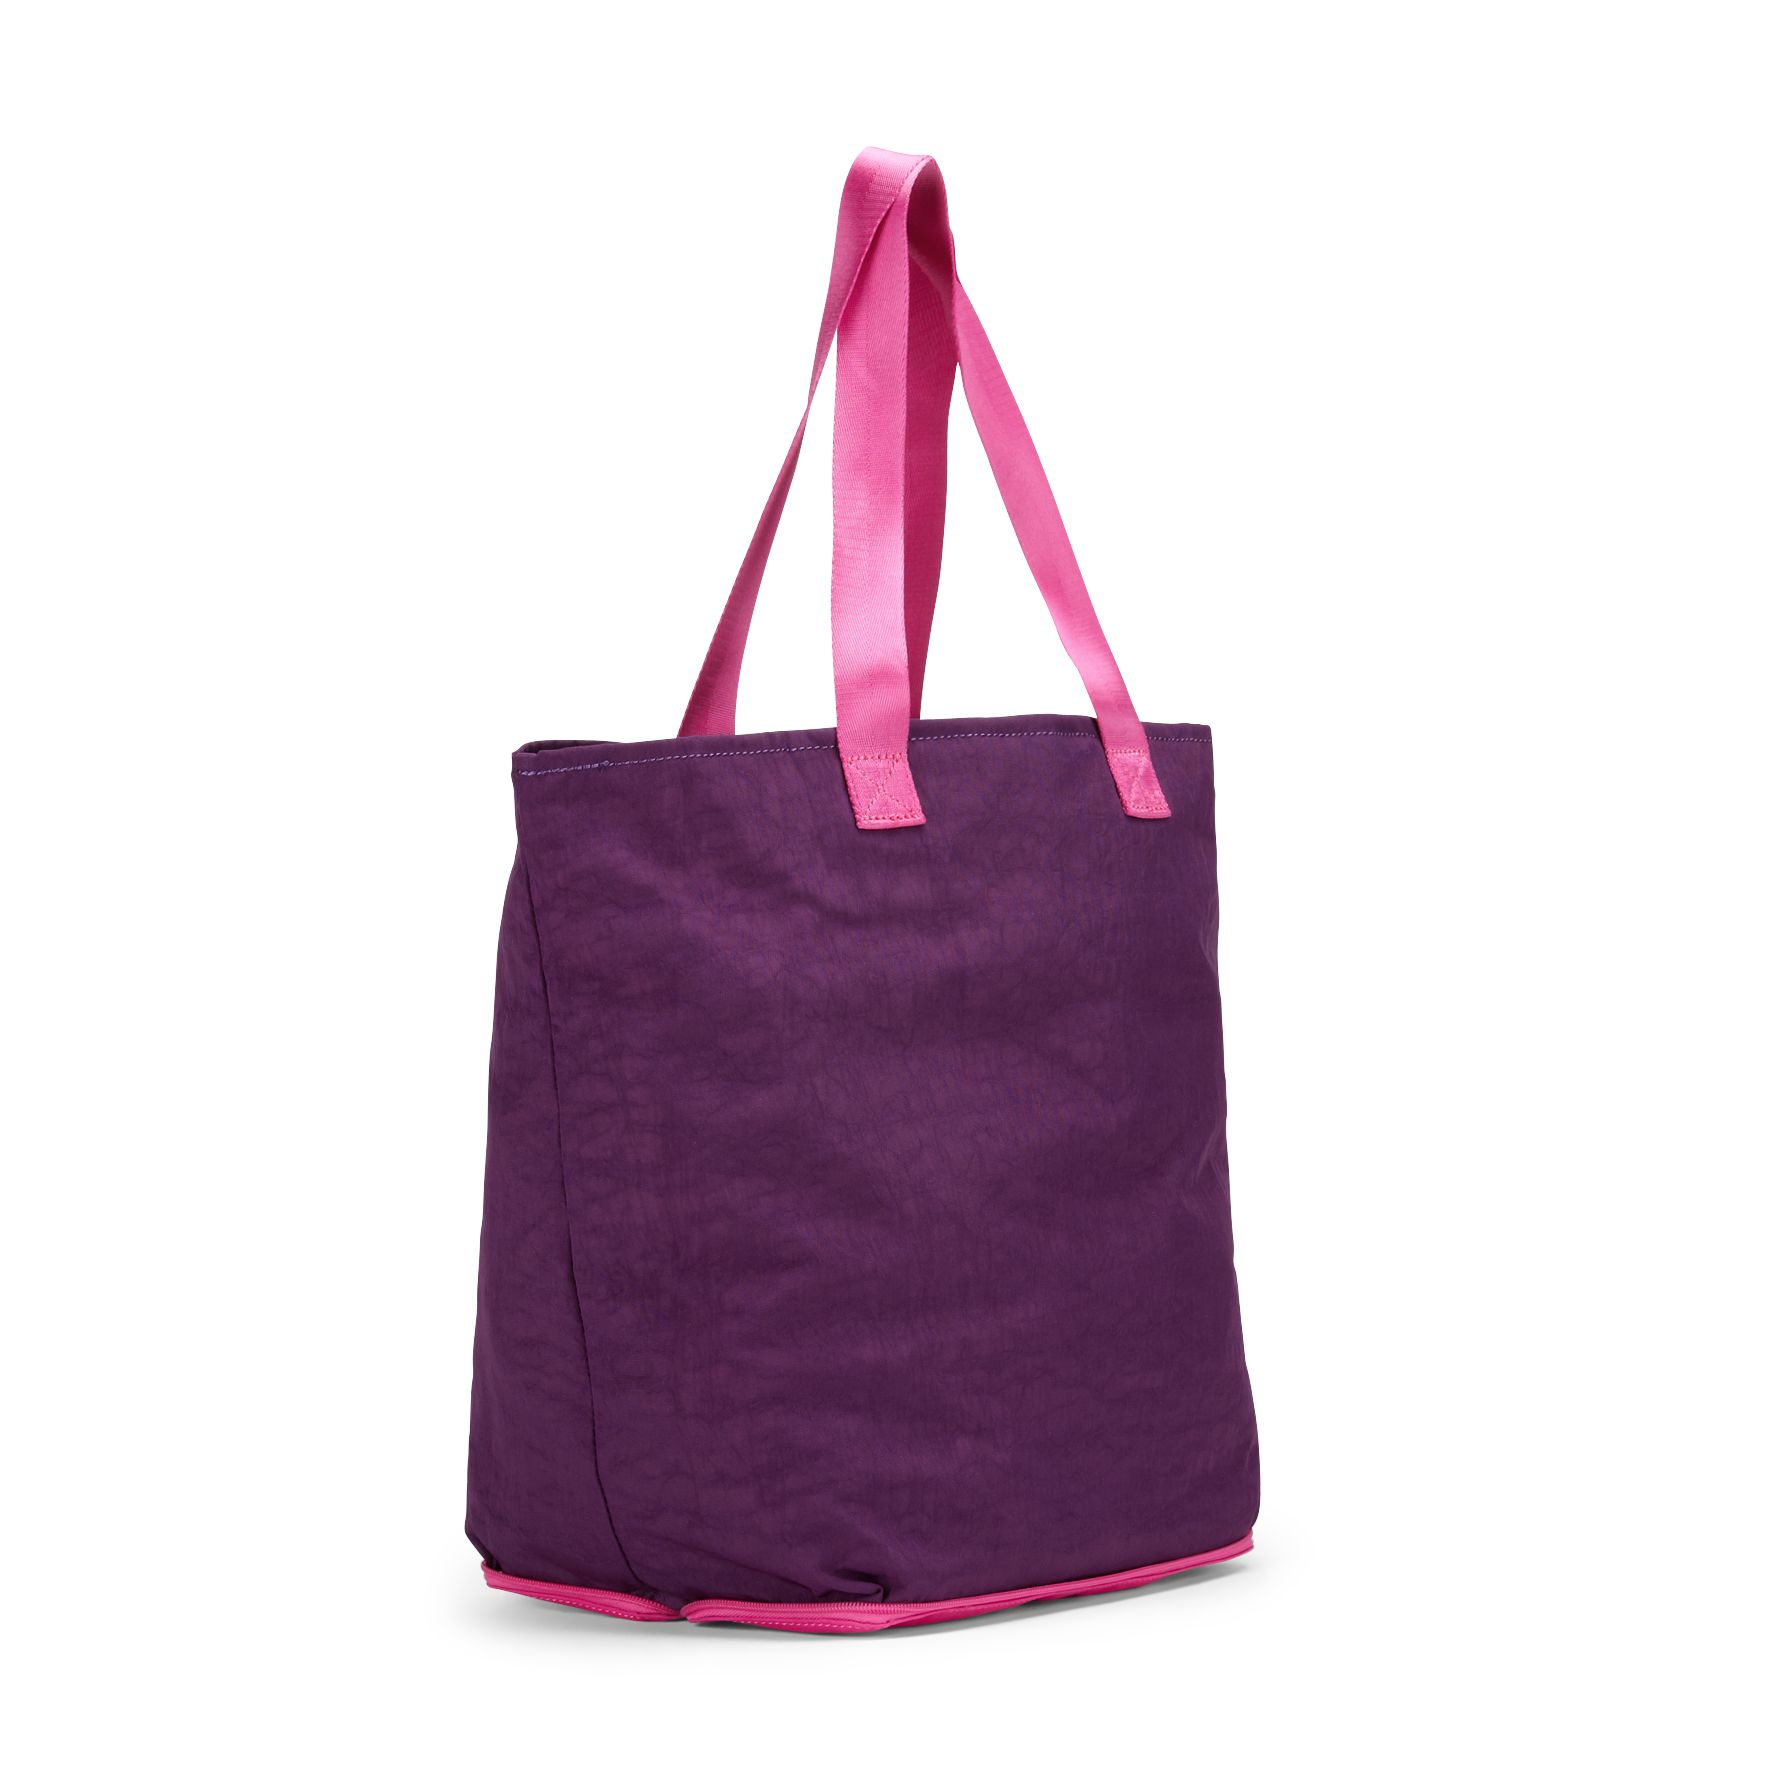 Hiphurray N foldable tote bag